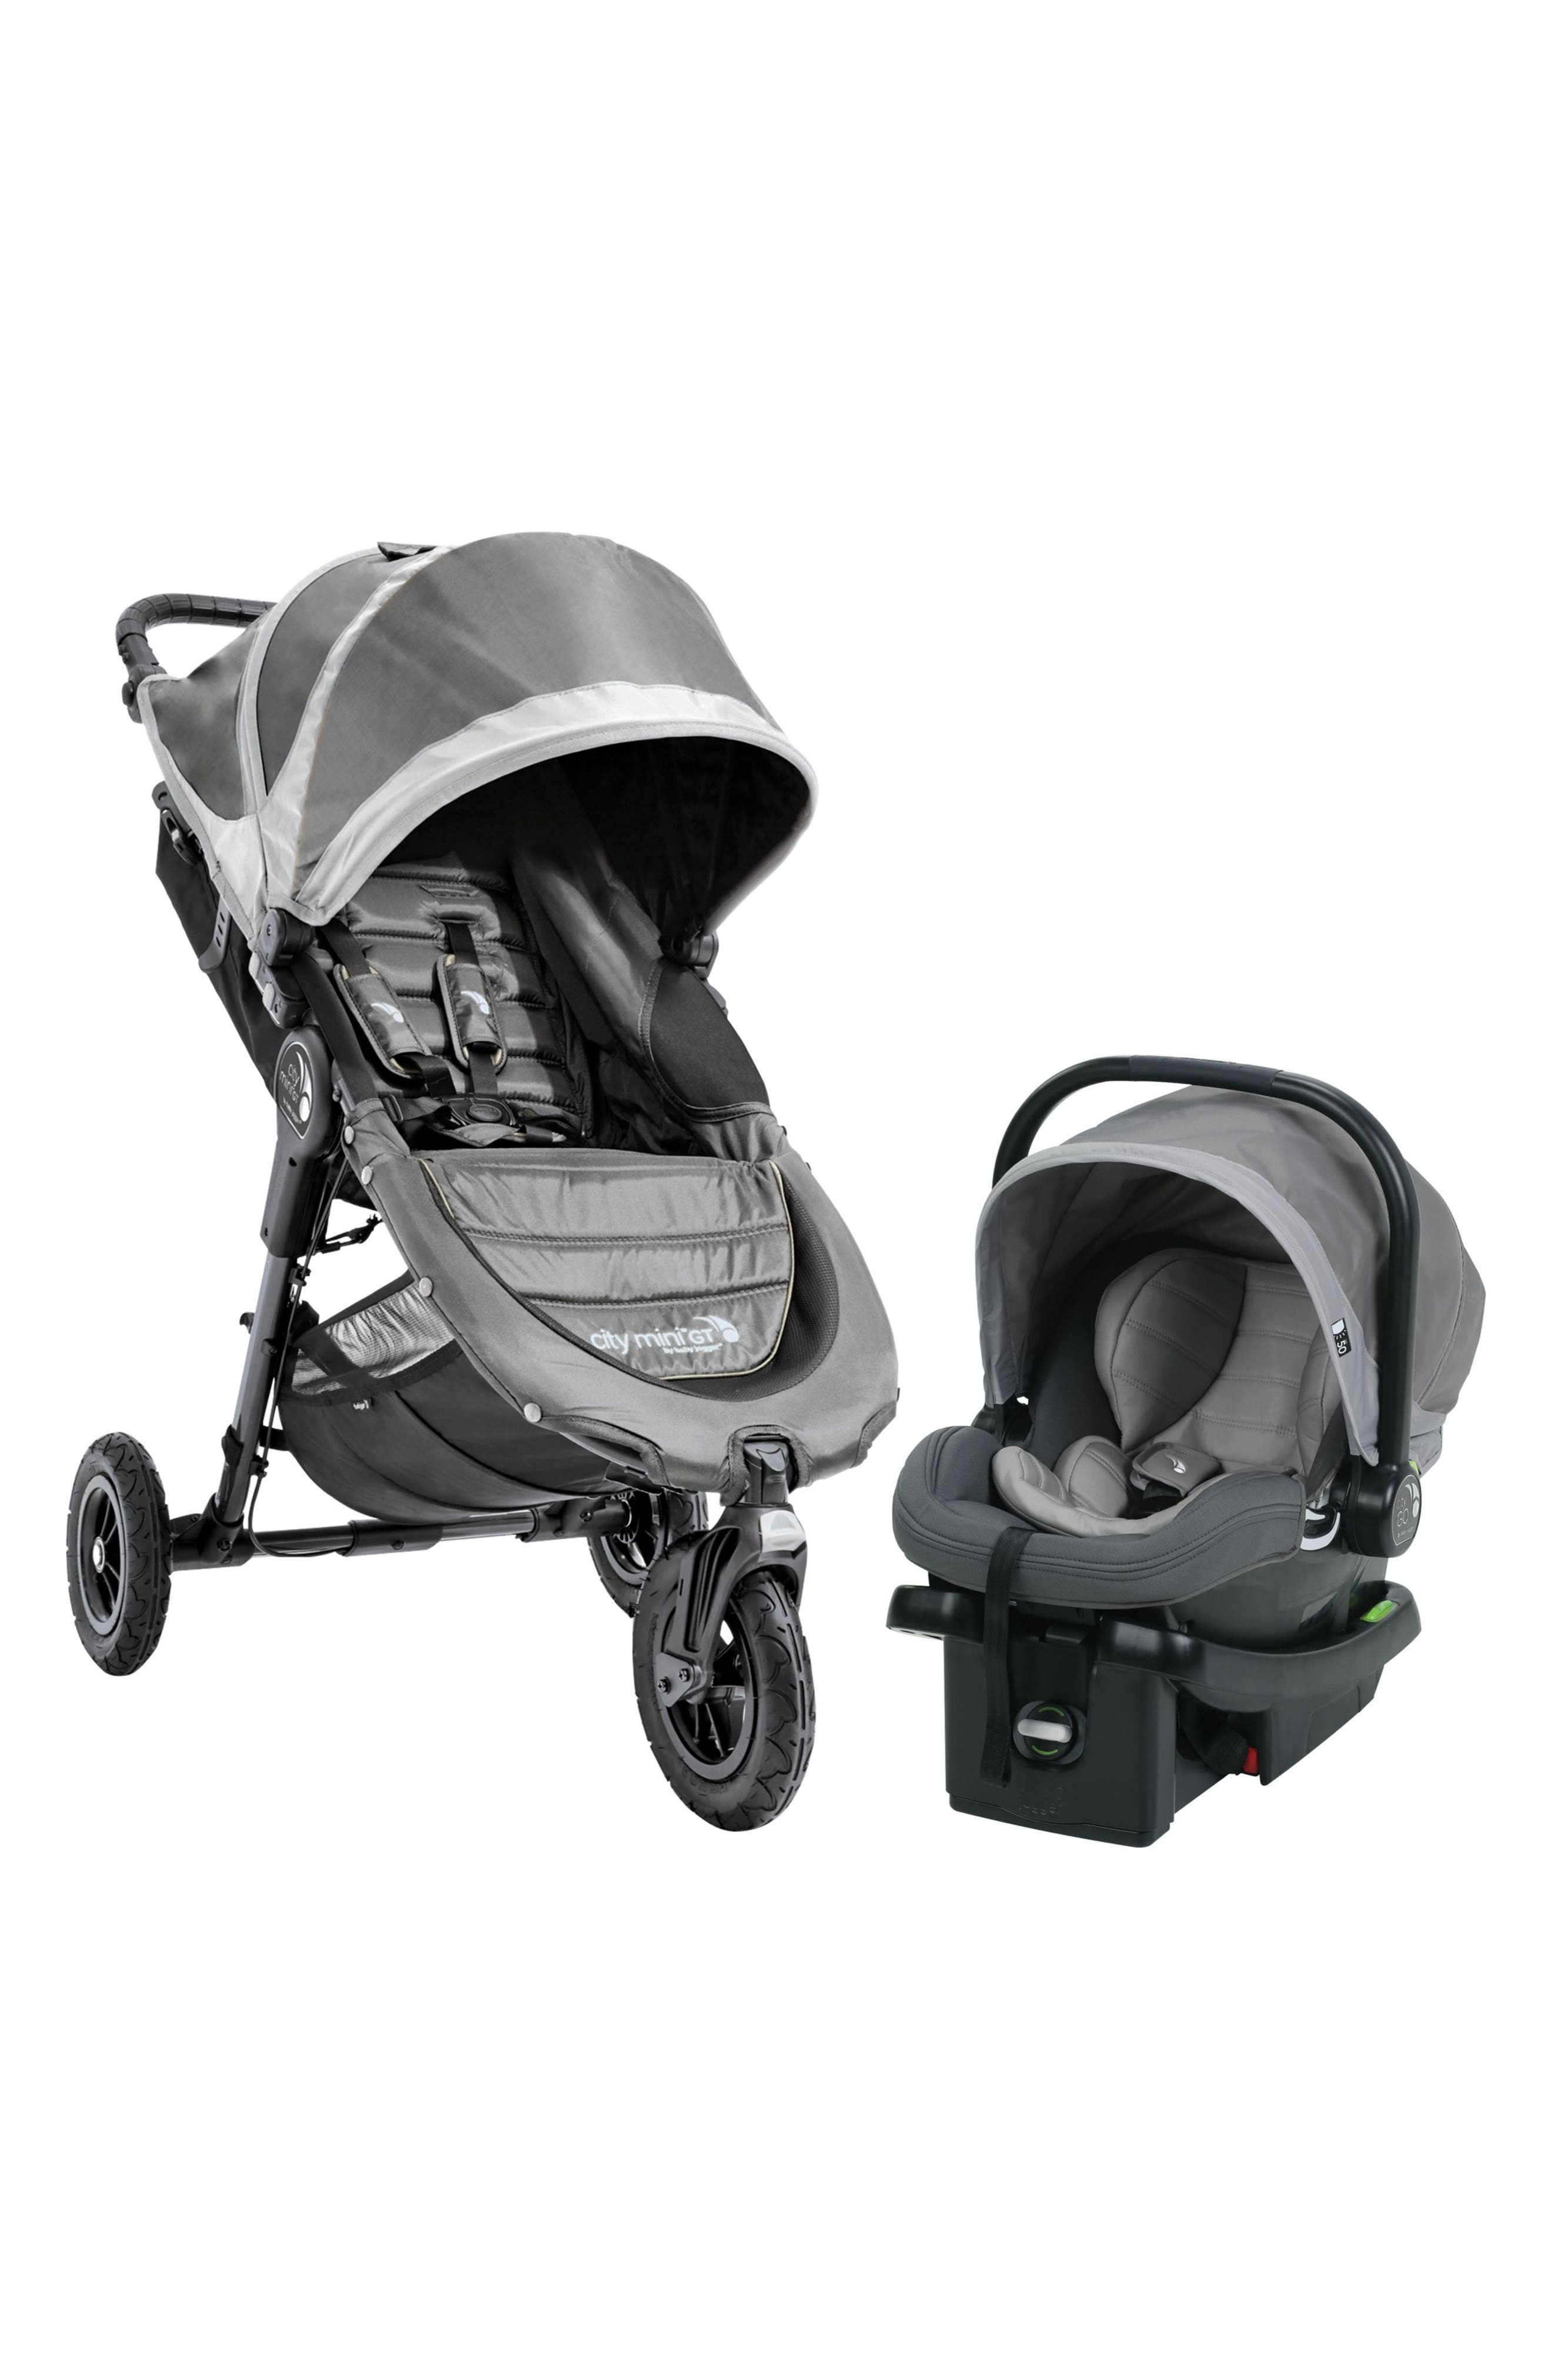 City Mini Single Stroller & City Go Infant Car Seat Travel System,                         Main,                         color, STEEL GREY